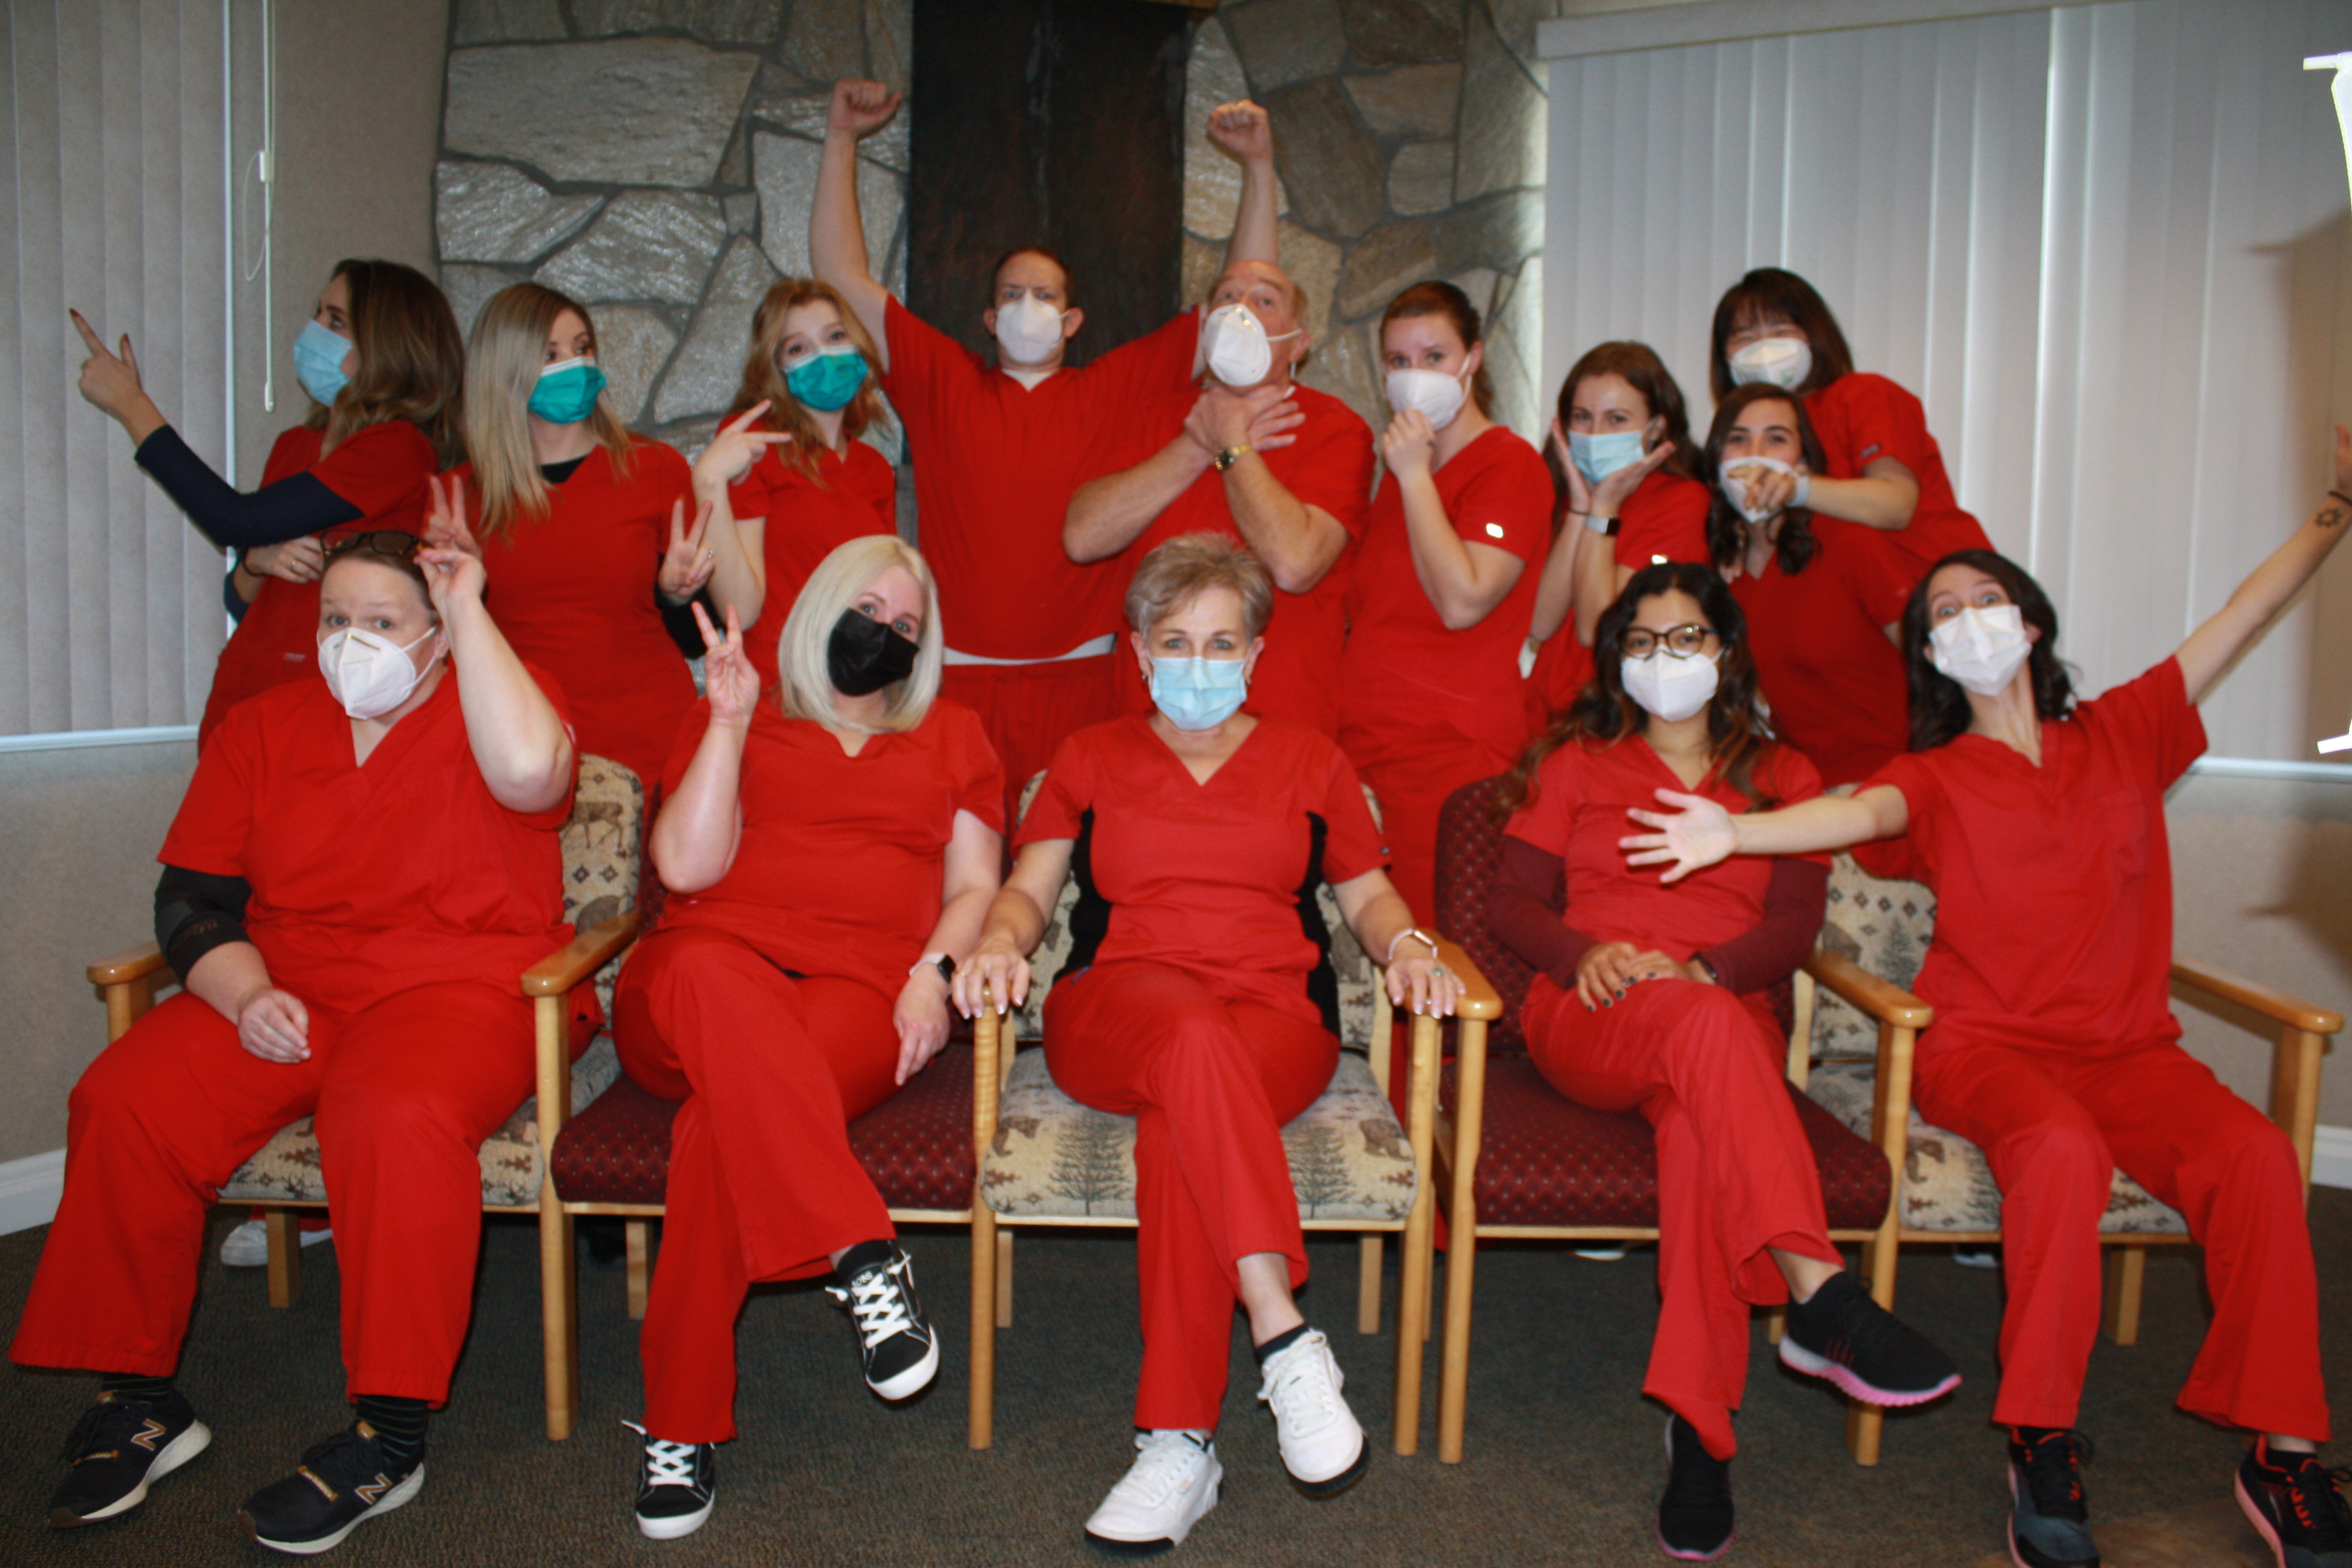 Mirci Dental Team all wearing red scrubs and looking fun